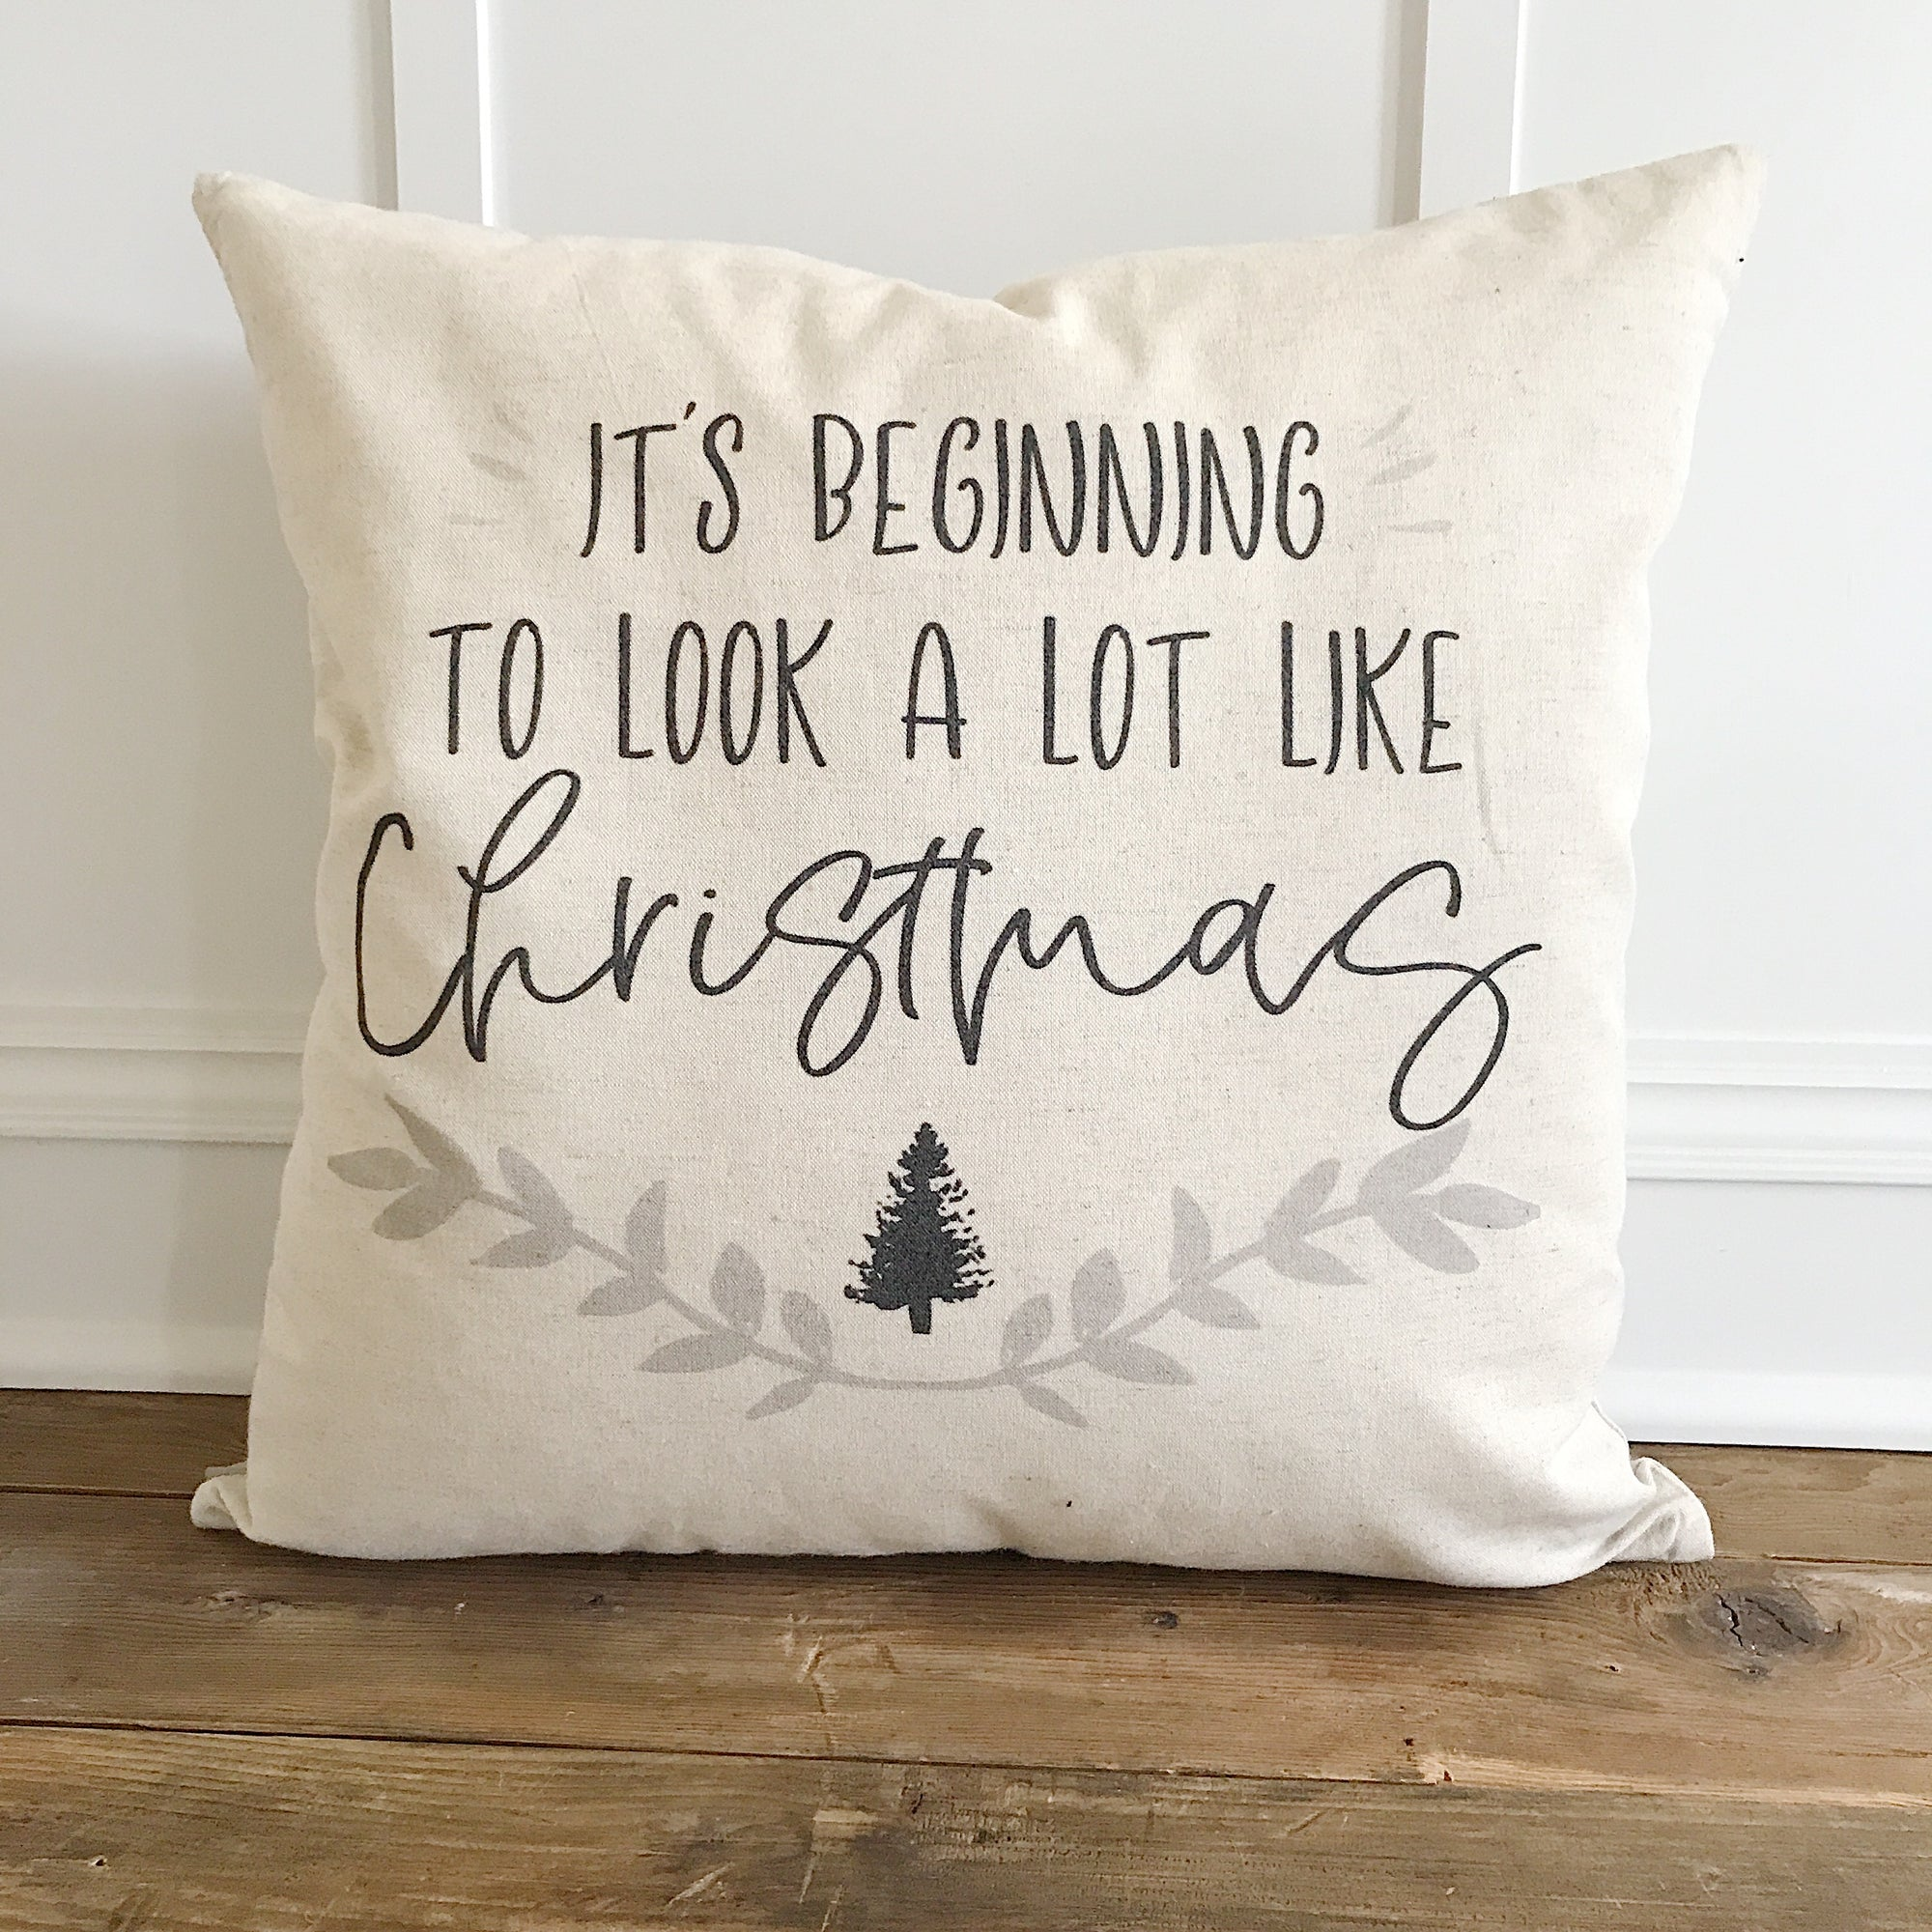 It's Beginning to look a lot like Christmas Pillow Cover - Linen and Ivory